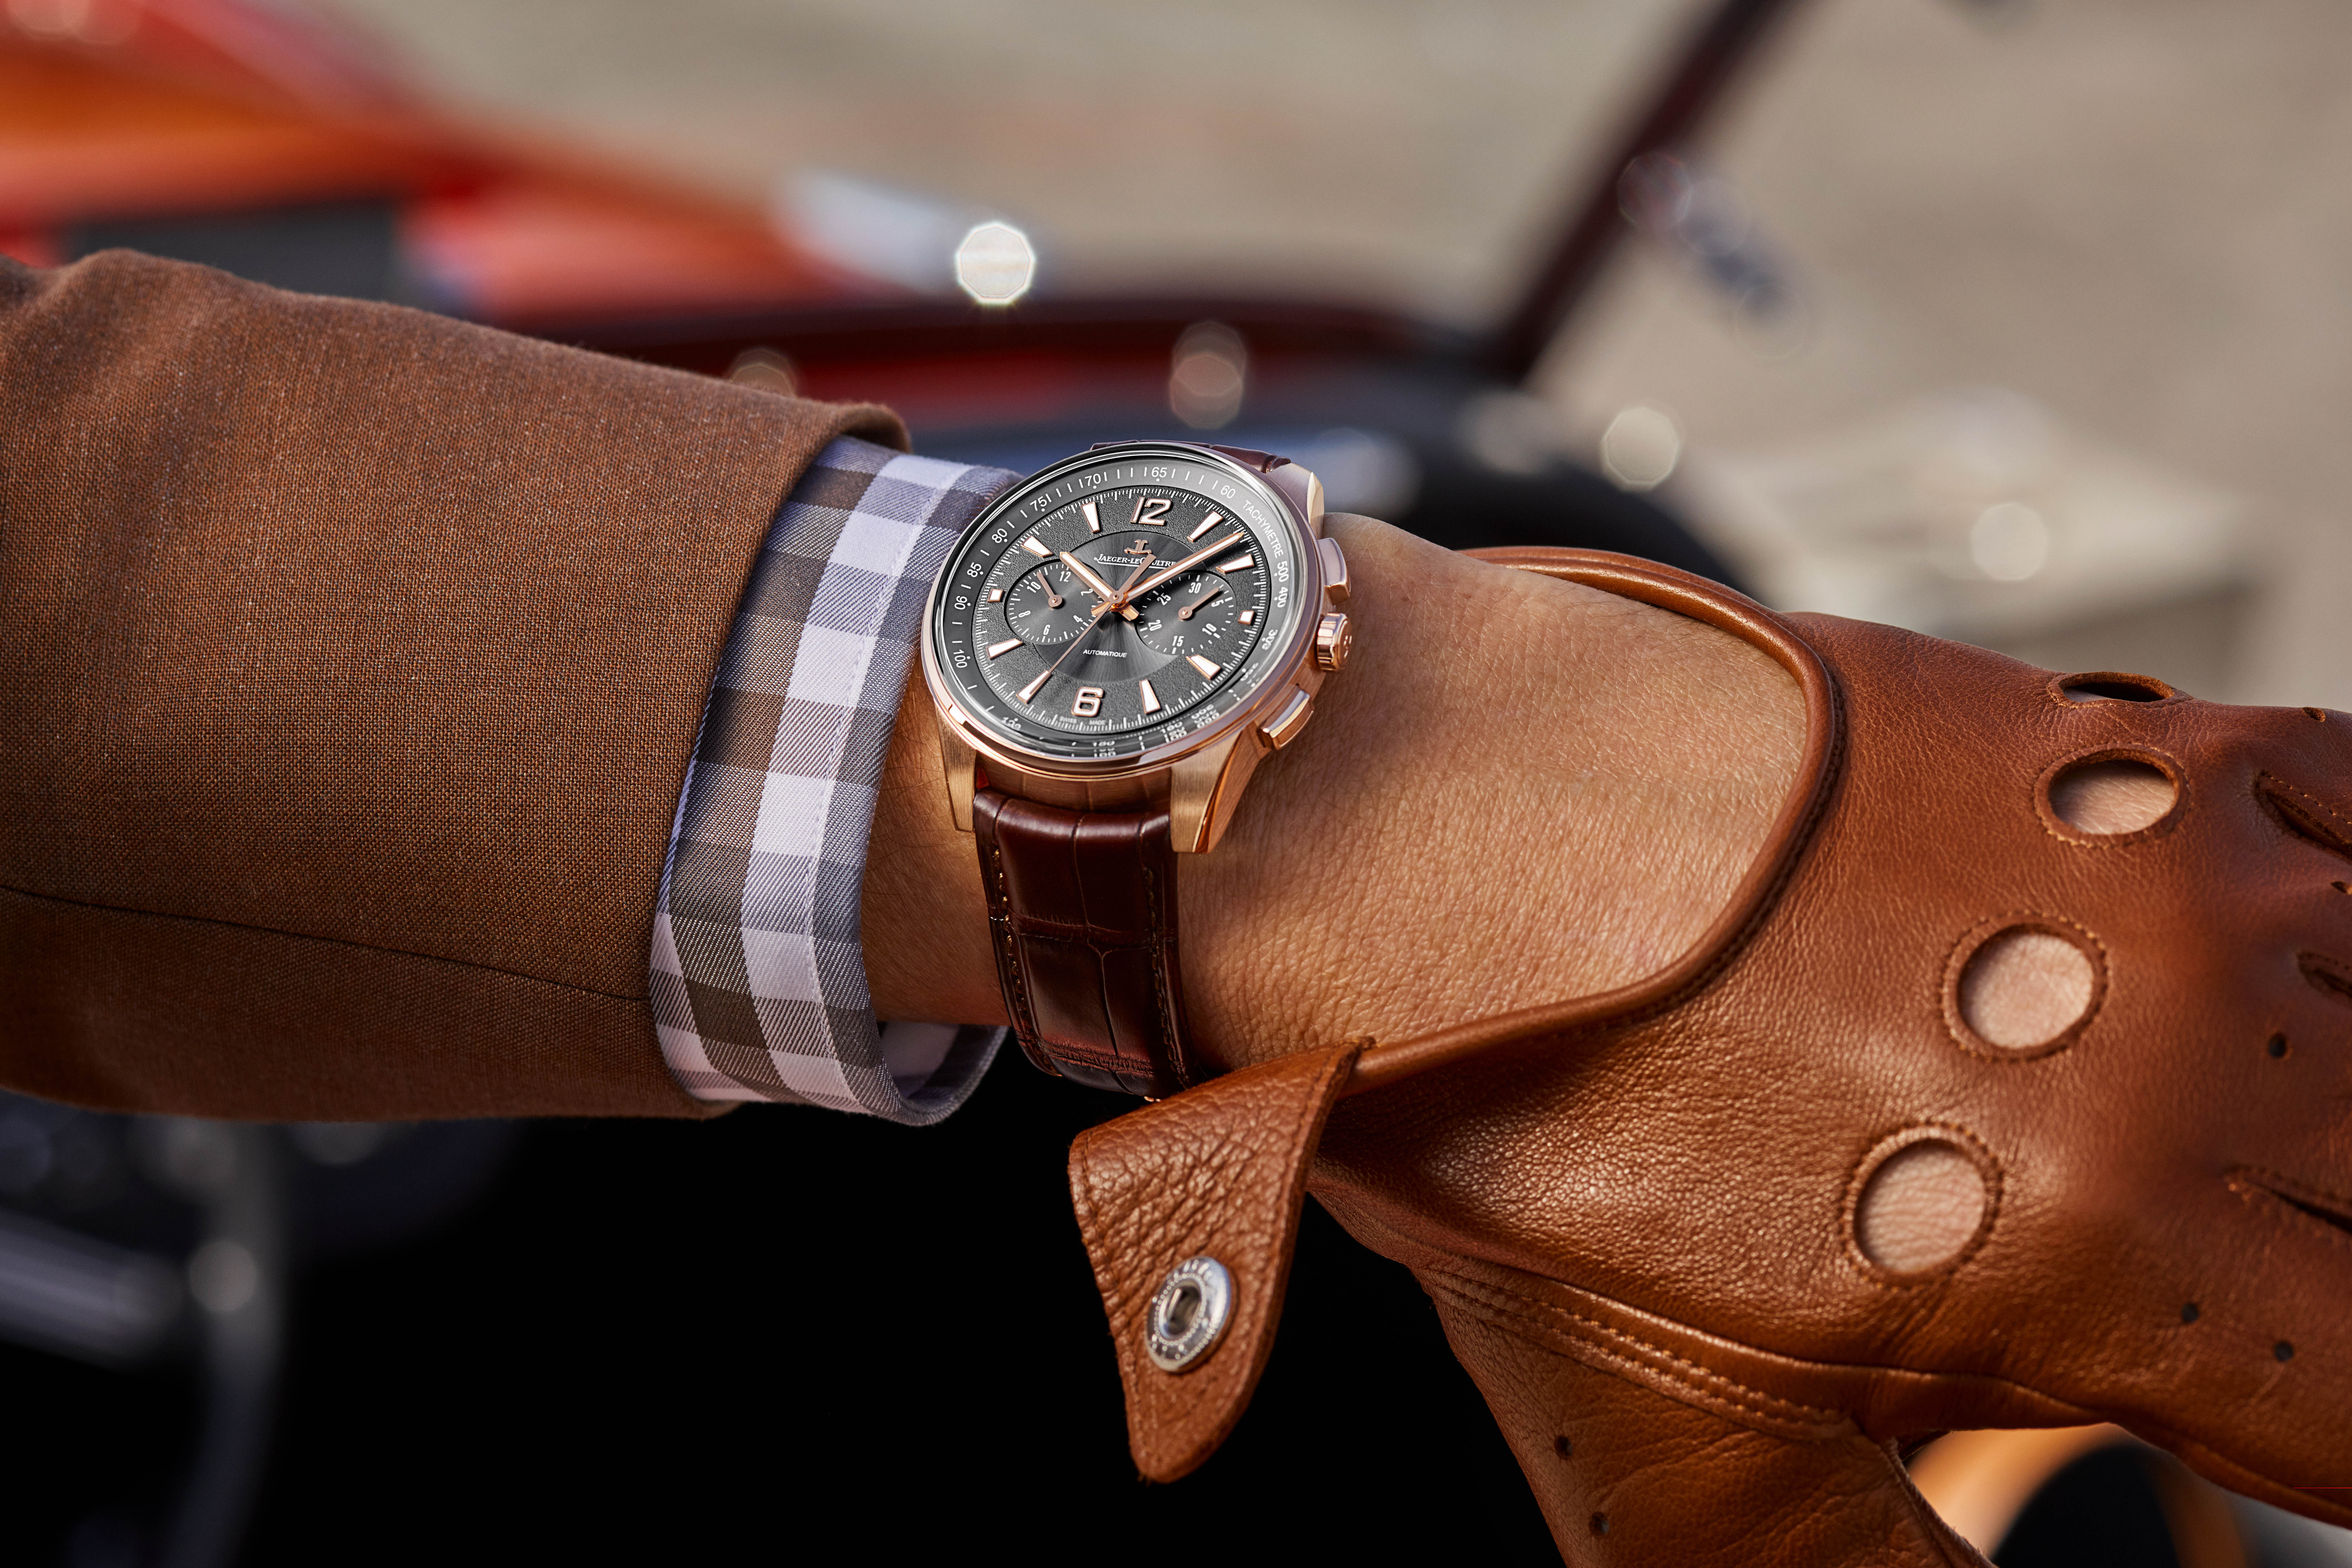 Jaeger-LeCoultre Polaris Chronograph in 18-karat pink gold, unveiled at SIHH 2018